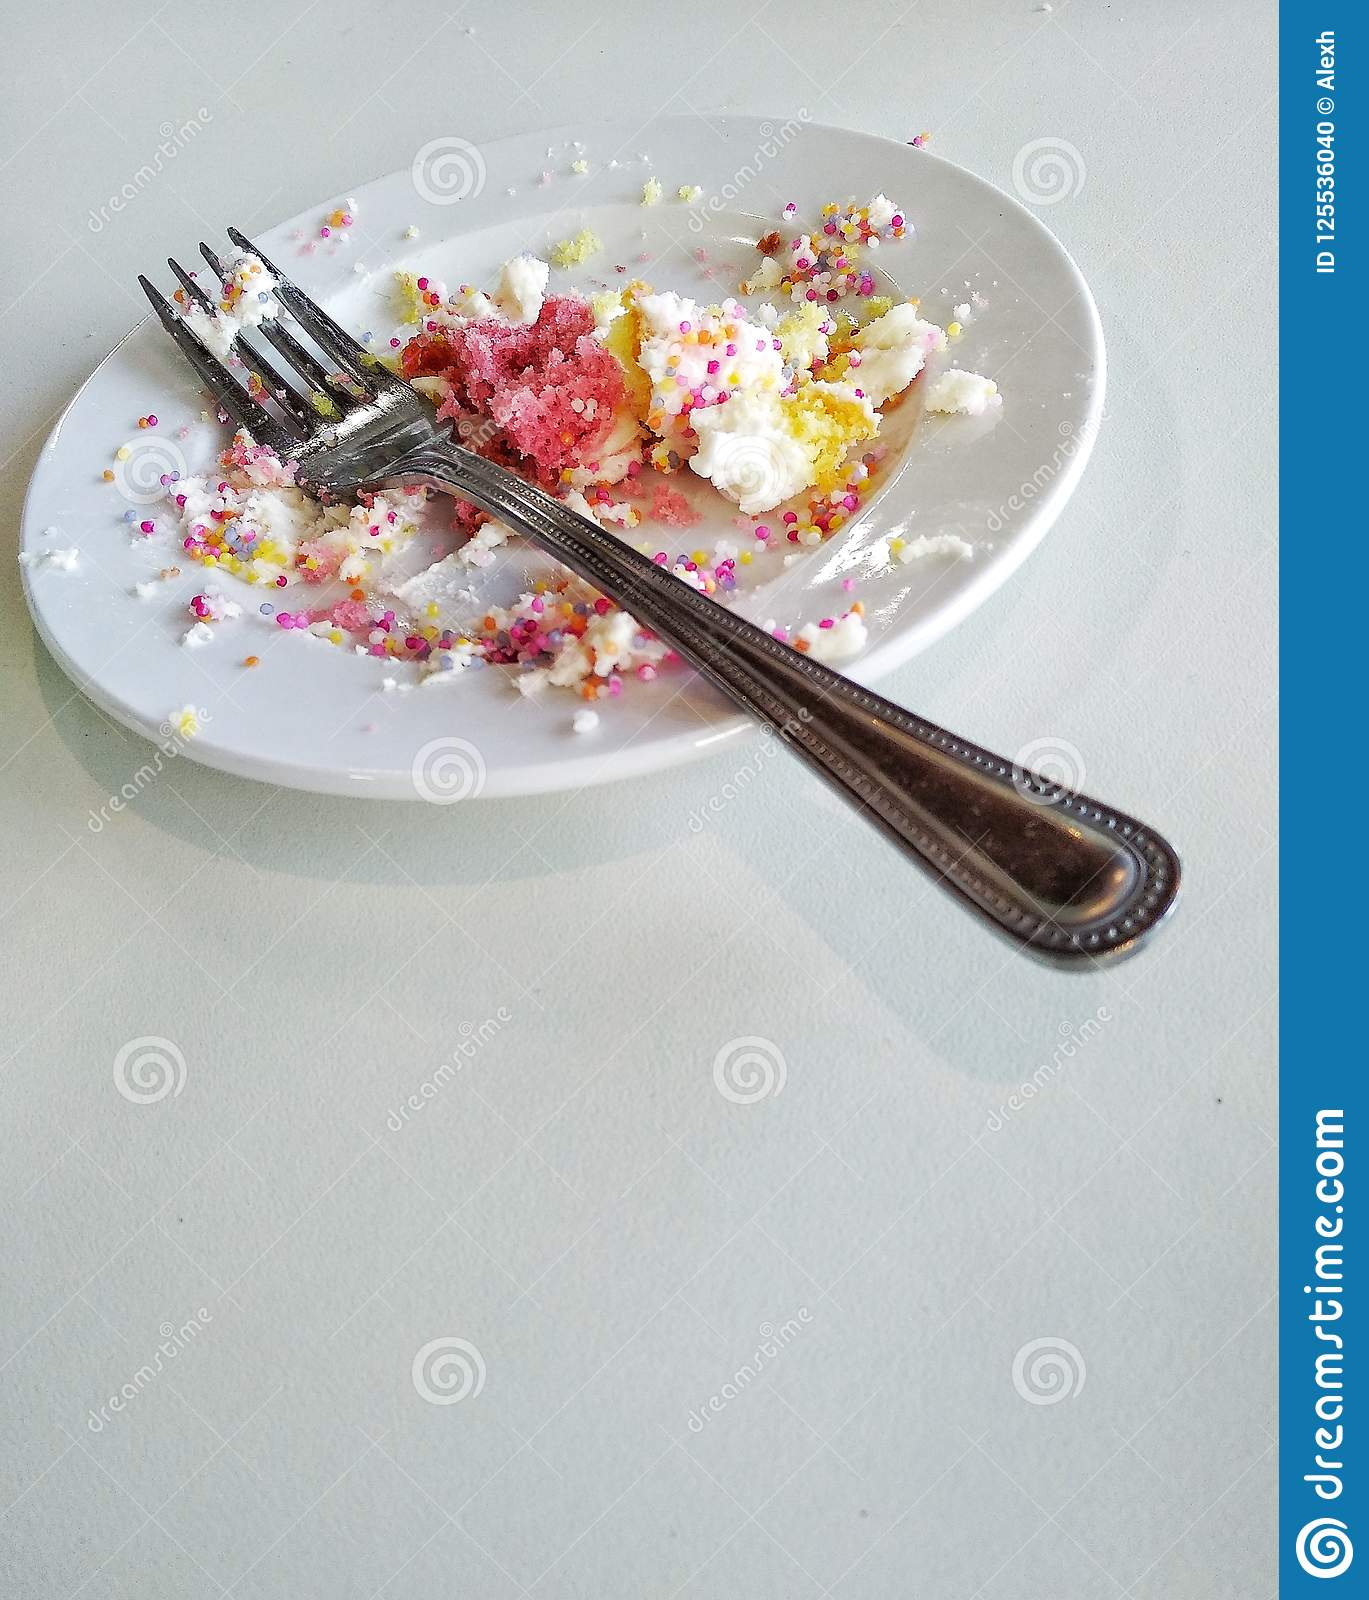 Stock Photo of Empty plate with crumbs and candle, elevated view x75077162 - Search Stock ... |Empty Plate With Crumbs Clipart